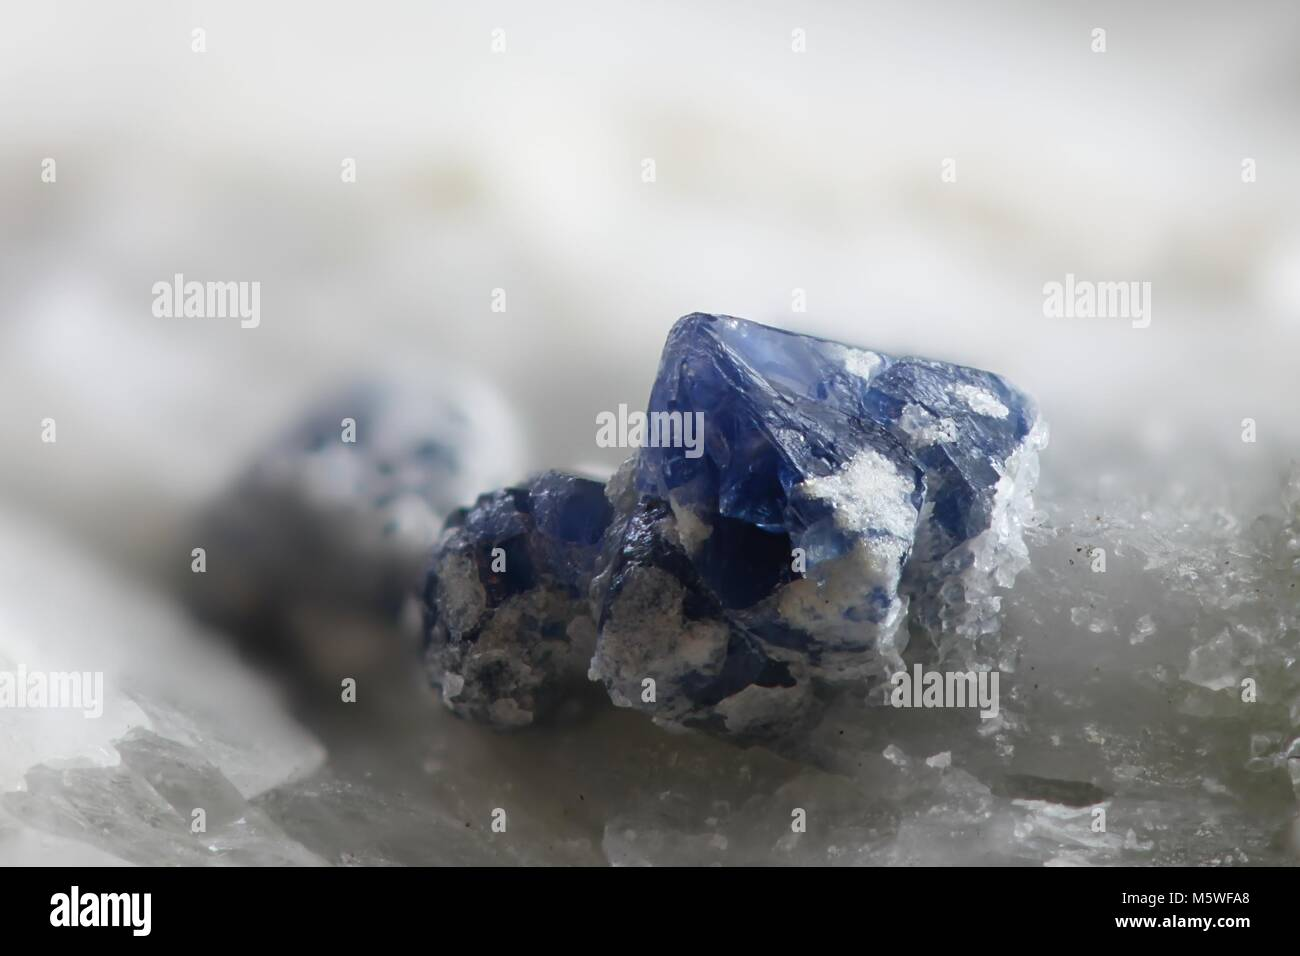 Blue spinel crystals in calcite matrix from Mustio marble quarry in